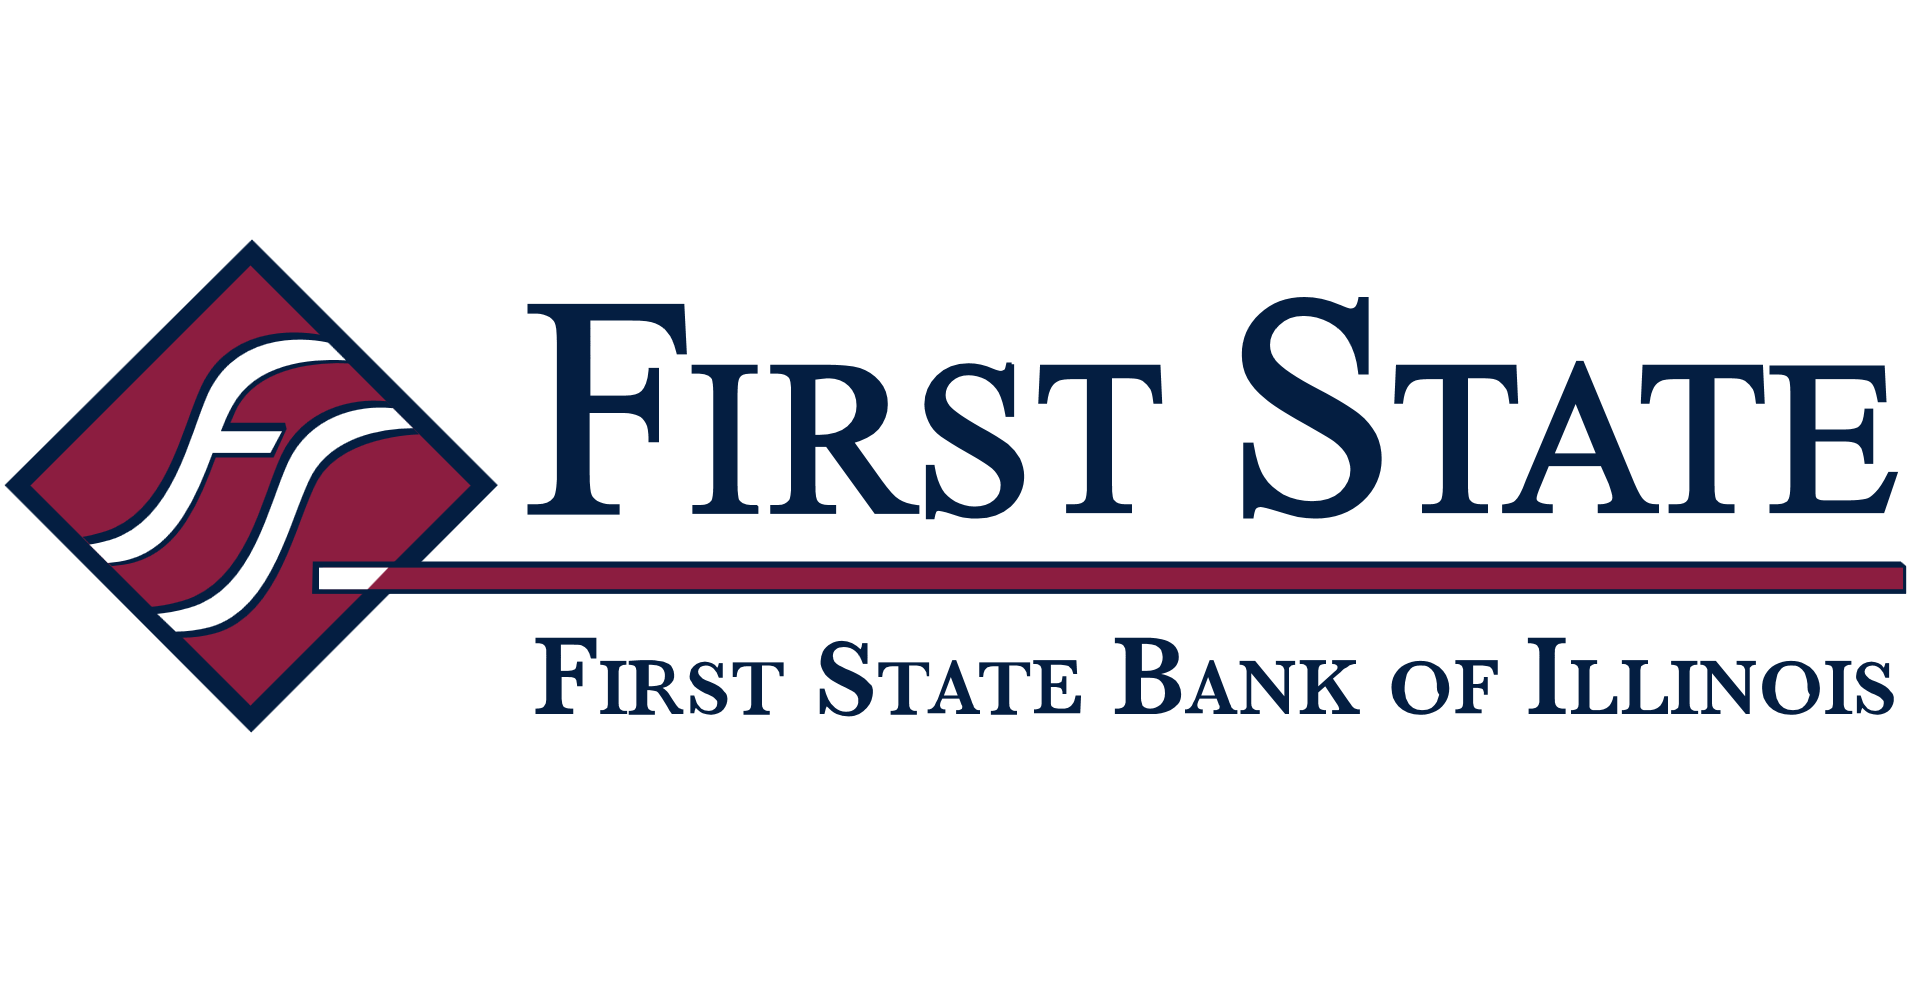 First State Bank of Illinois